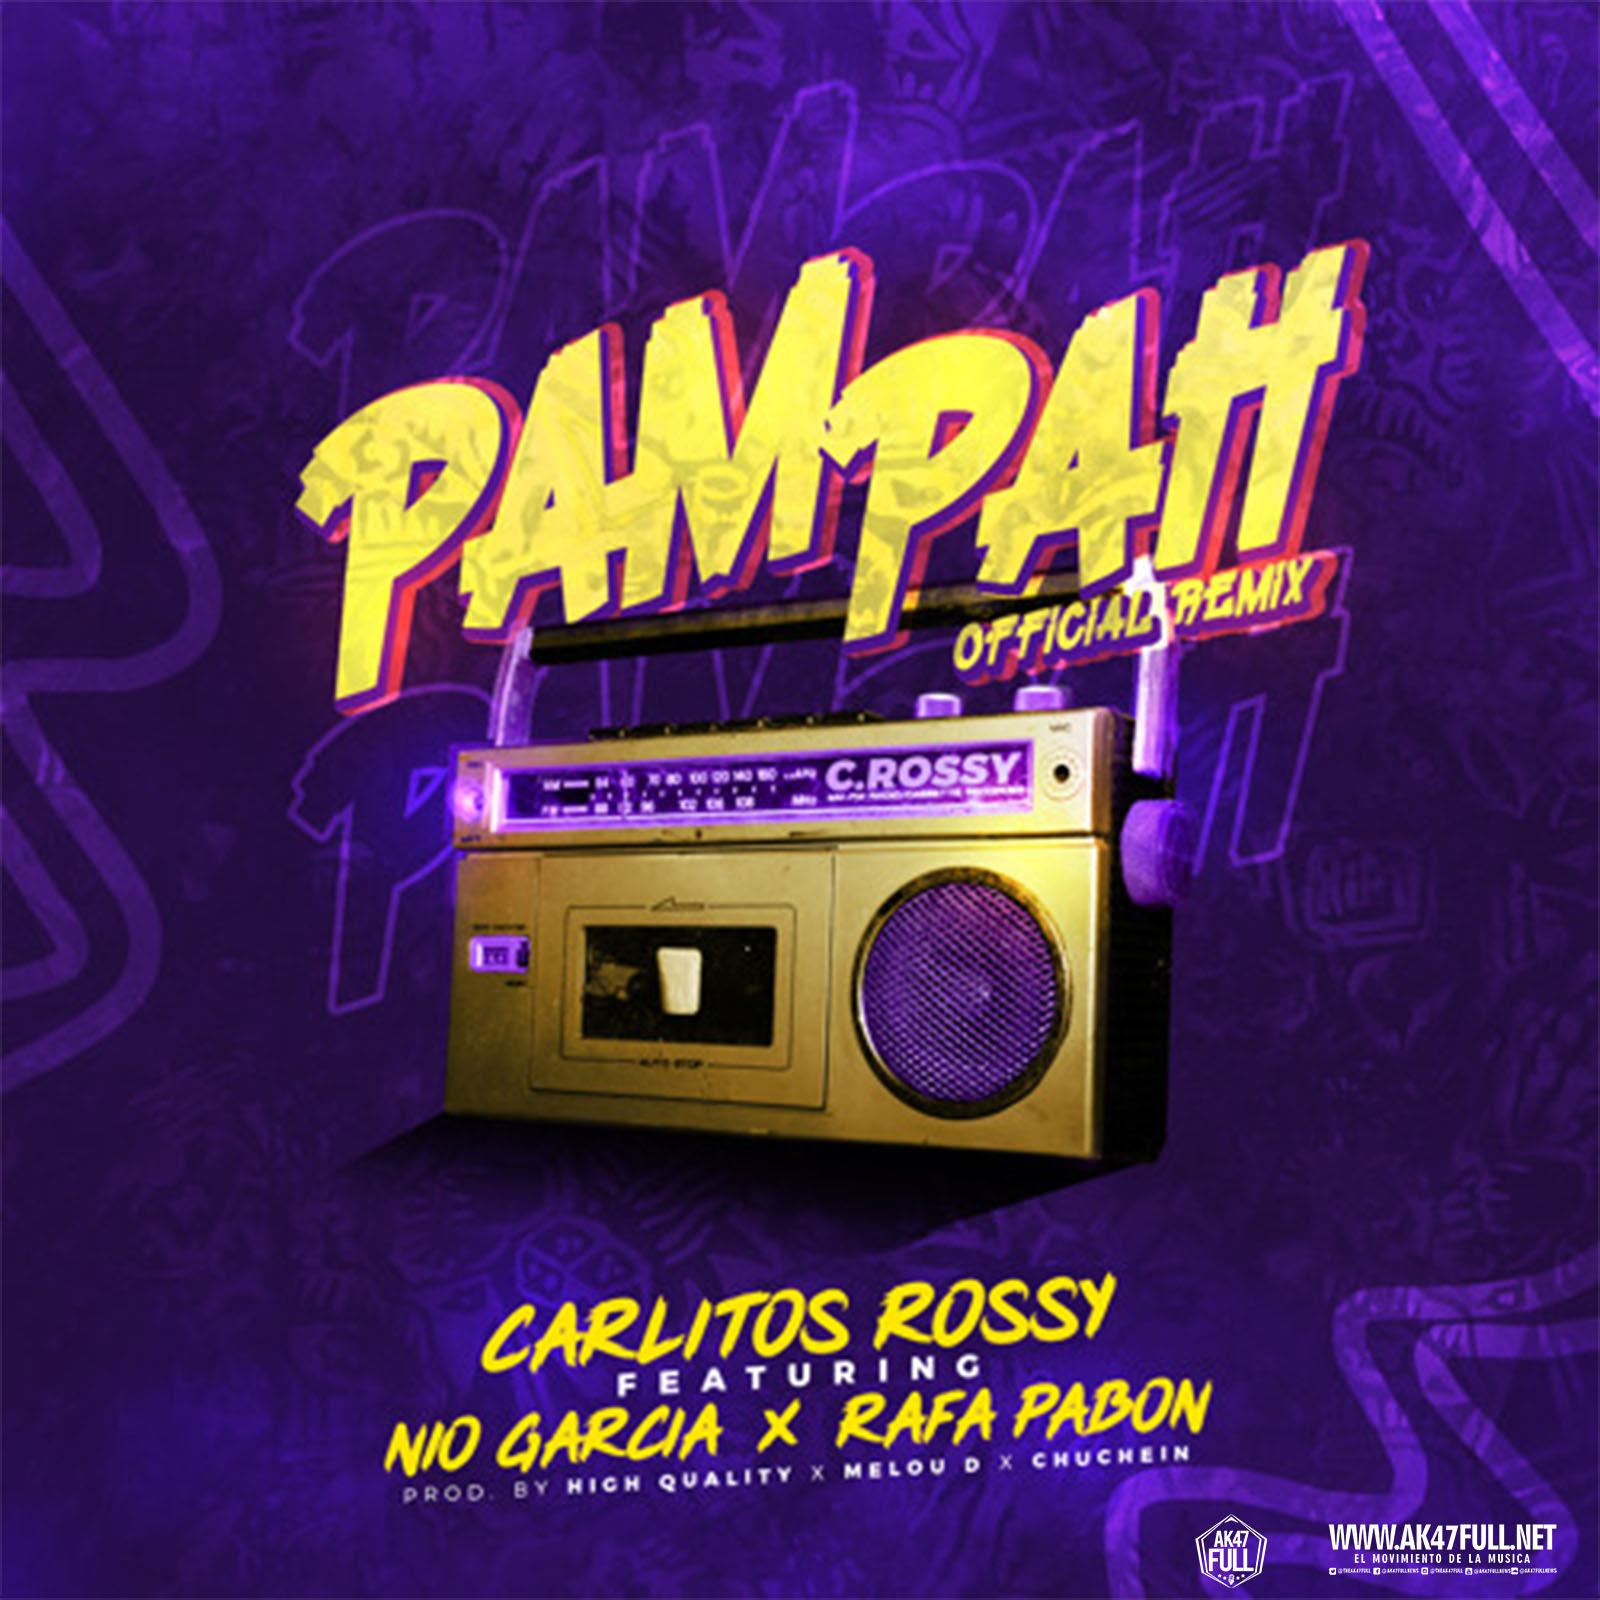 Carlitos Rossy Ft. Nio Garcia Y Rafa Pabon – PamPah Official Remix - Carlitos Rossy Ft. Nio Garcia Y Rafa Pabon – PamPah (Official Remix)